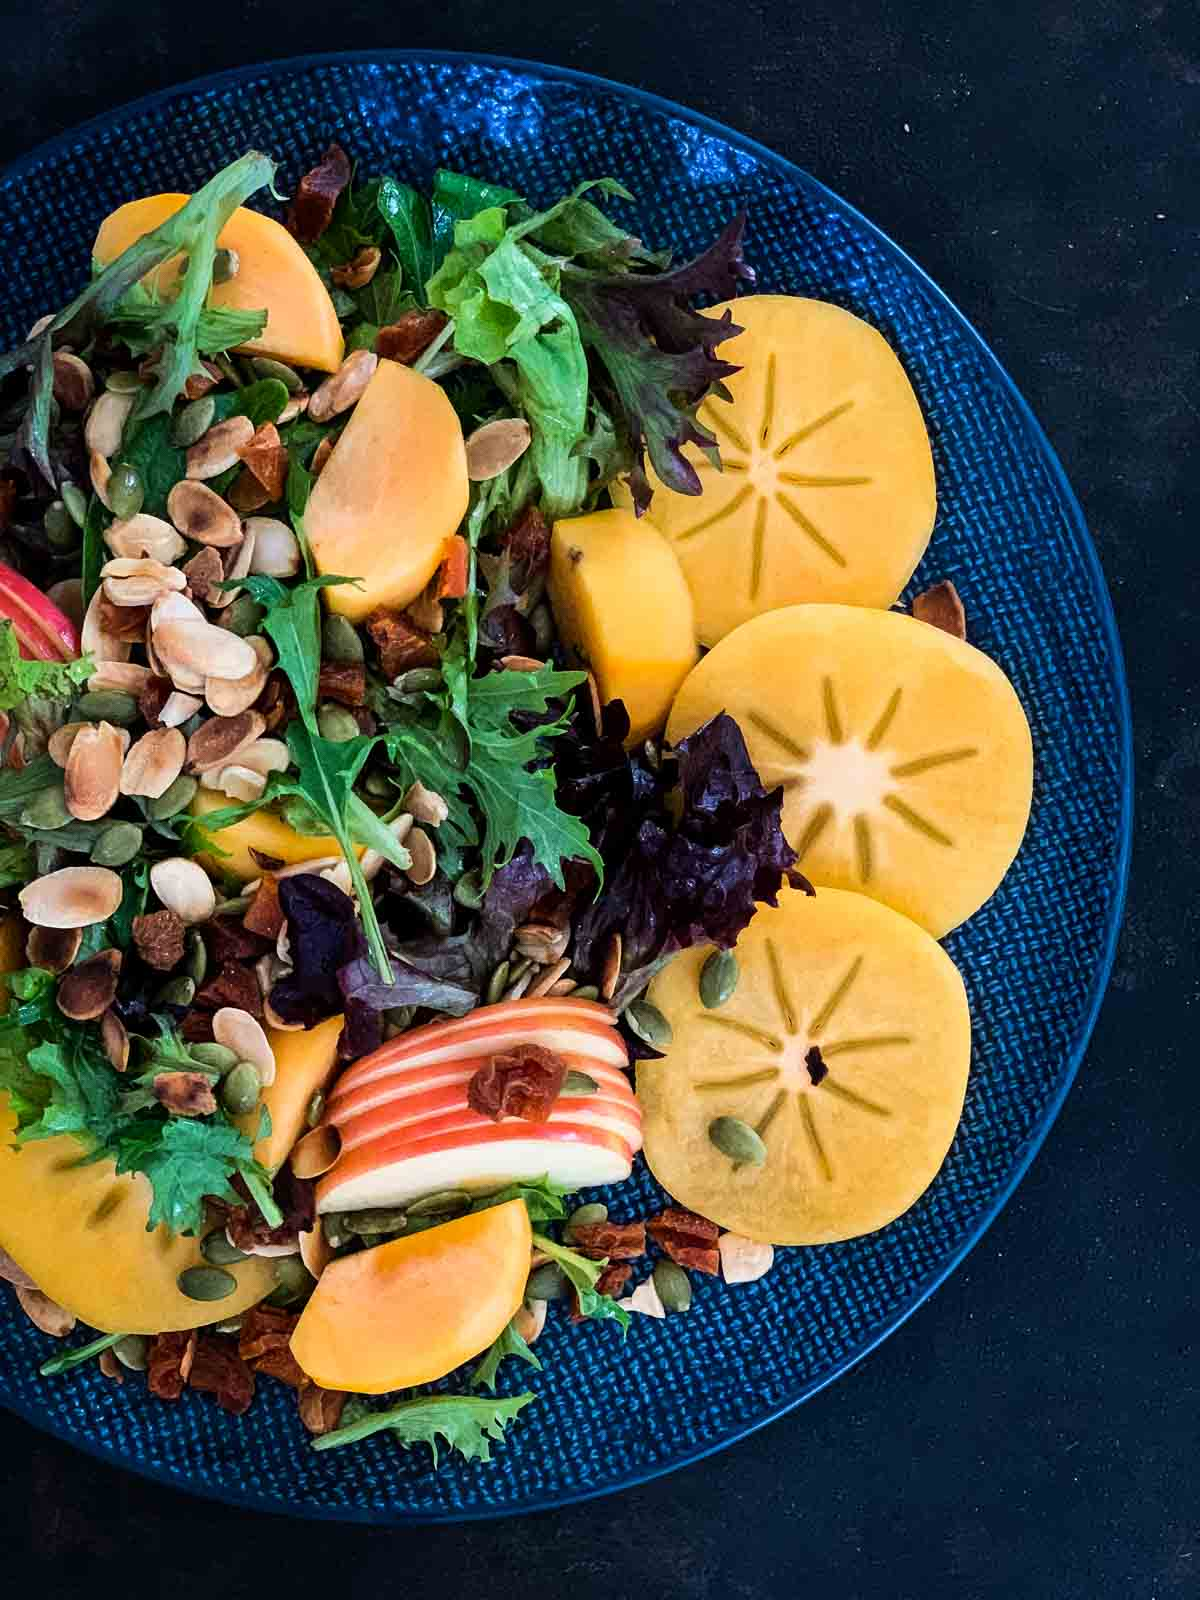 Salad with Persimmons and Beetroot Dressing